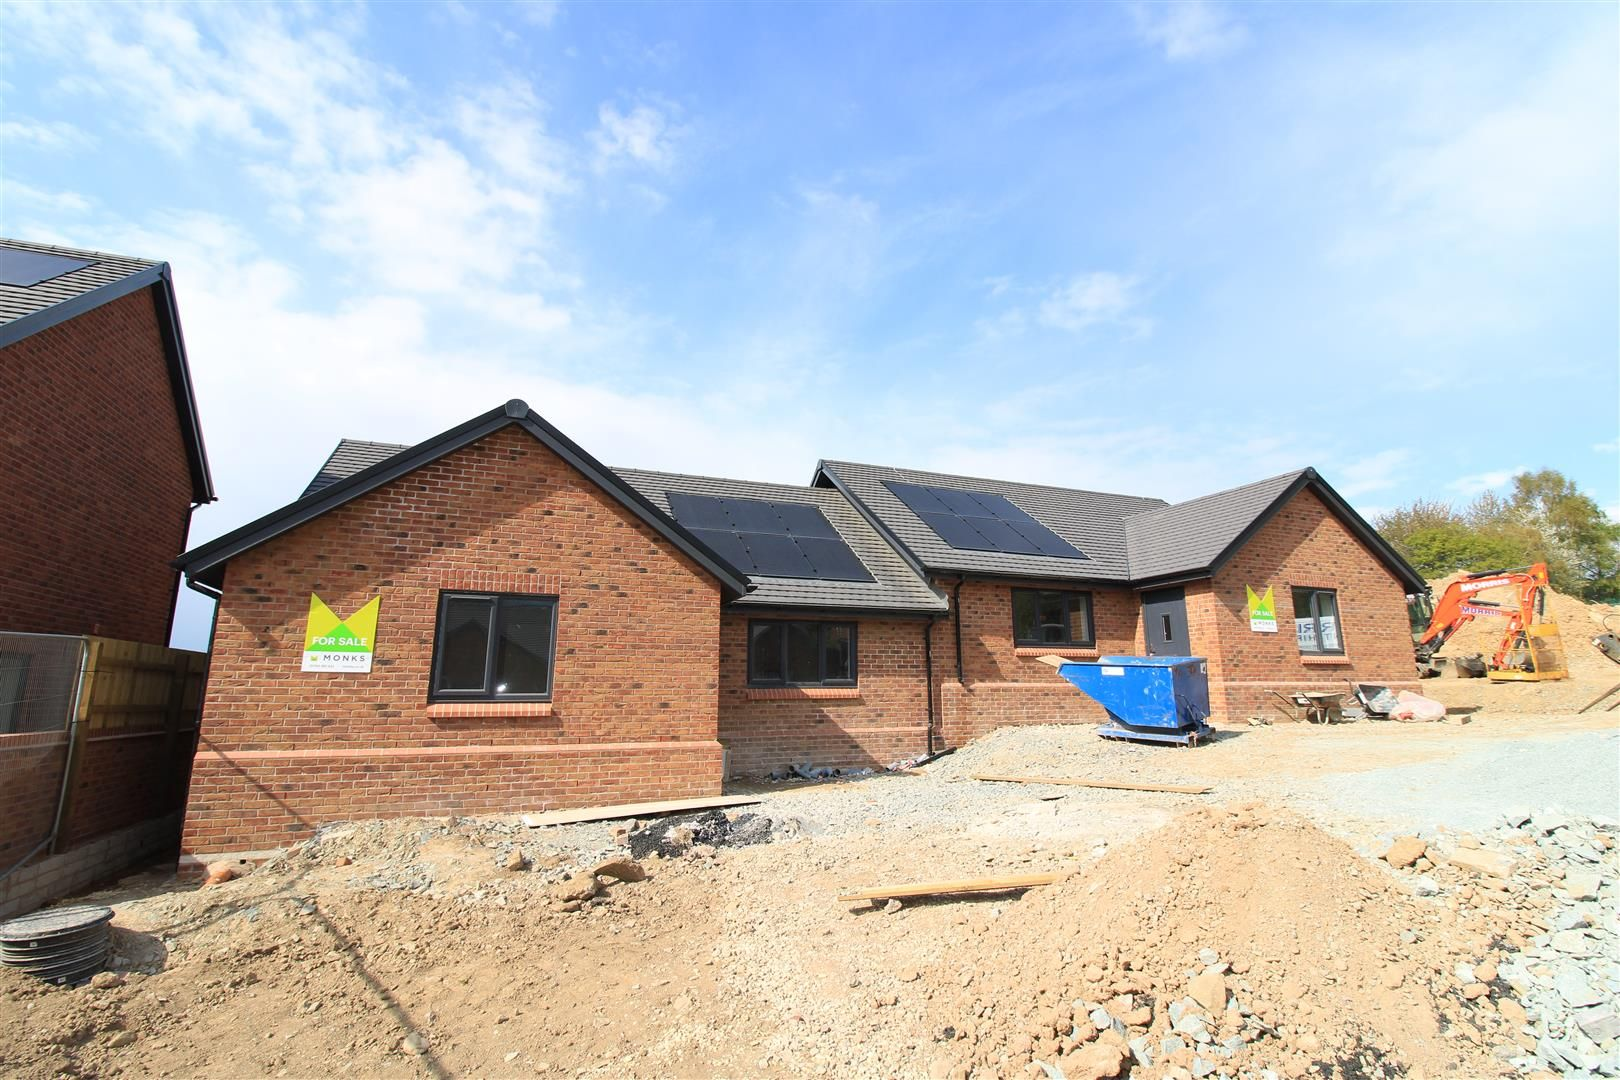 Property photo 1 of 8. Bungalow Frontage.Jpg